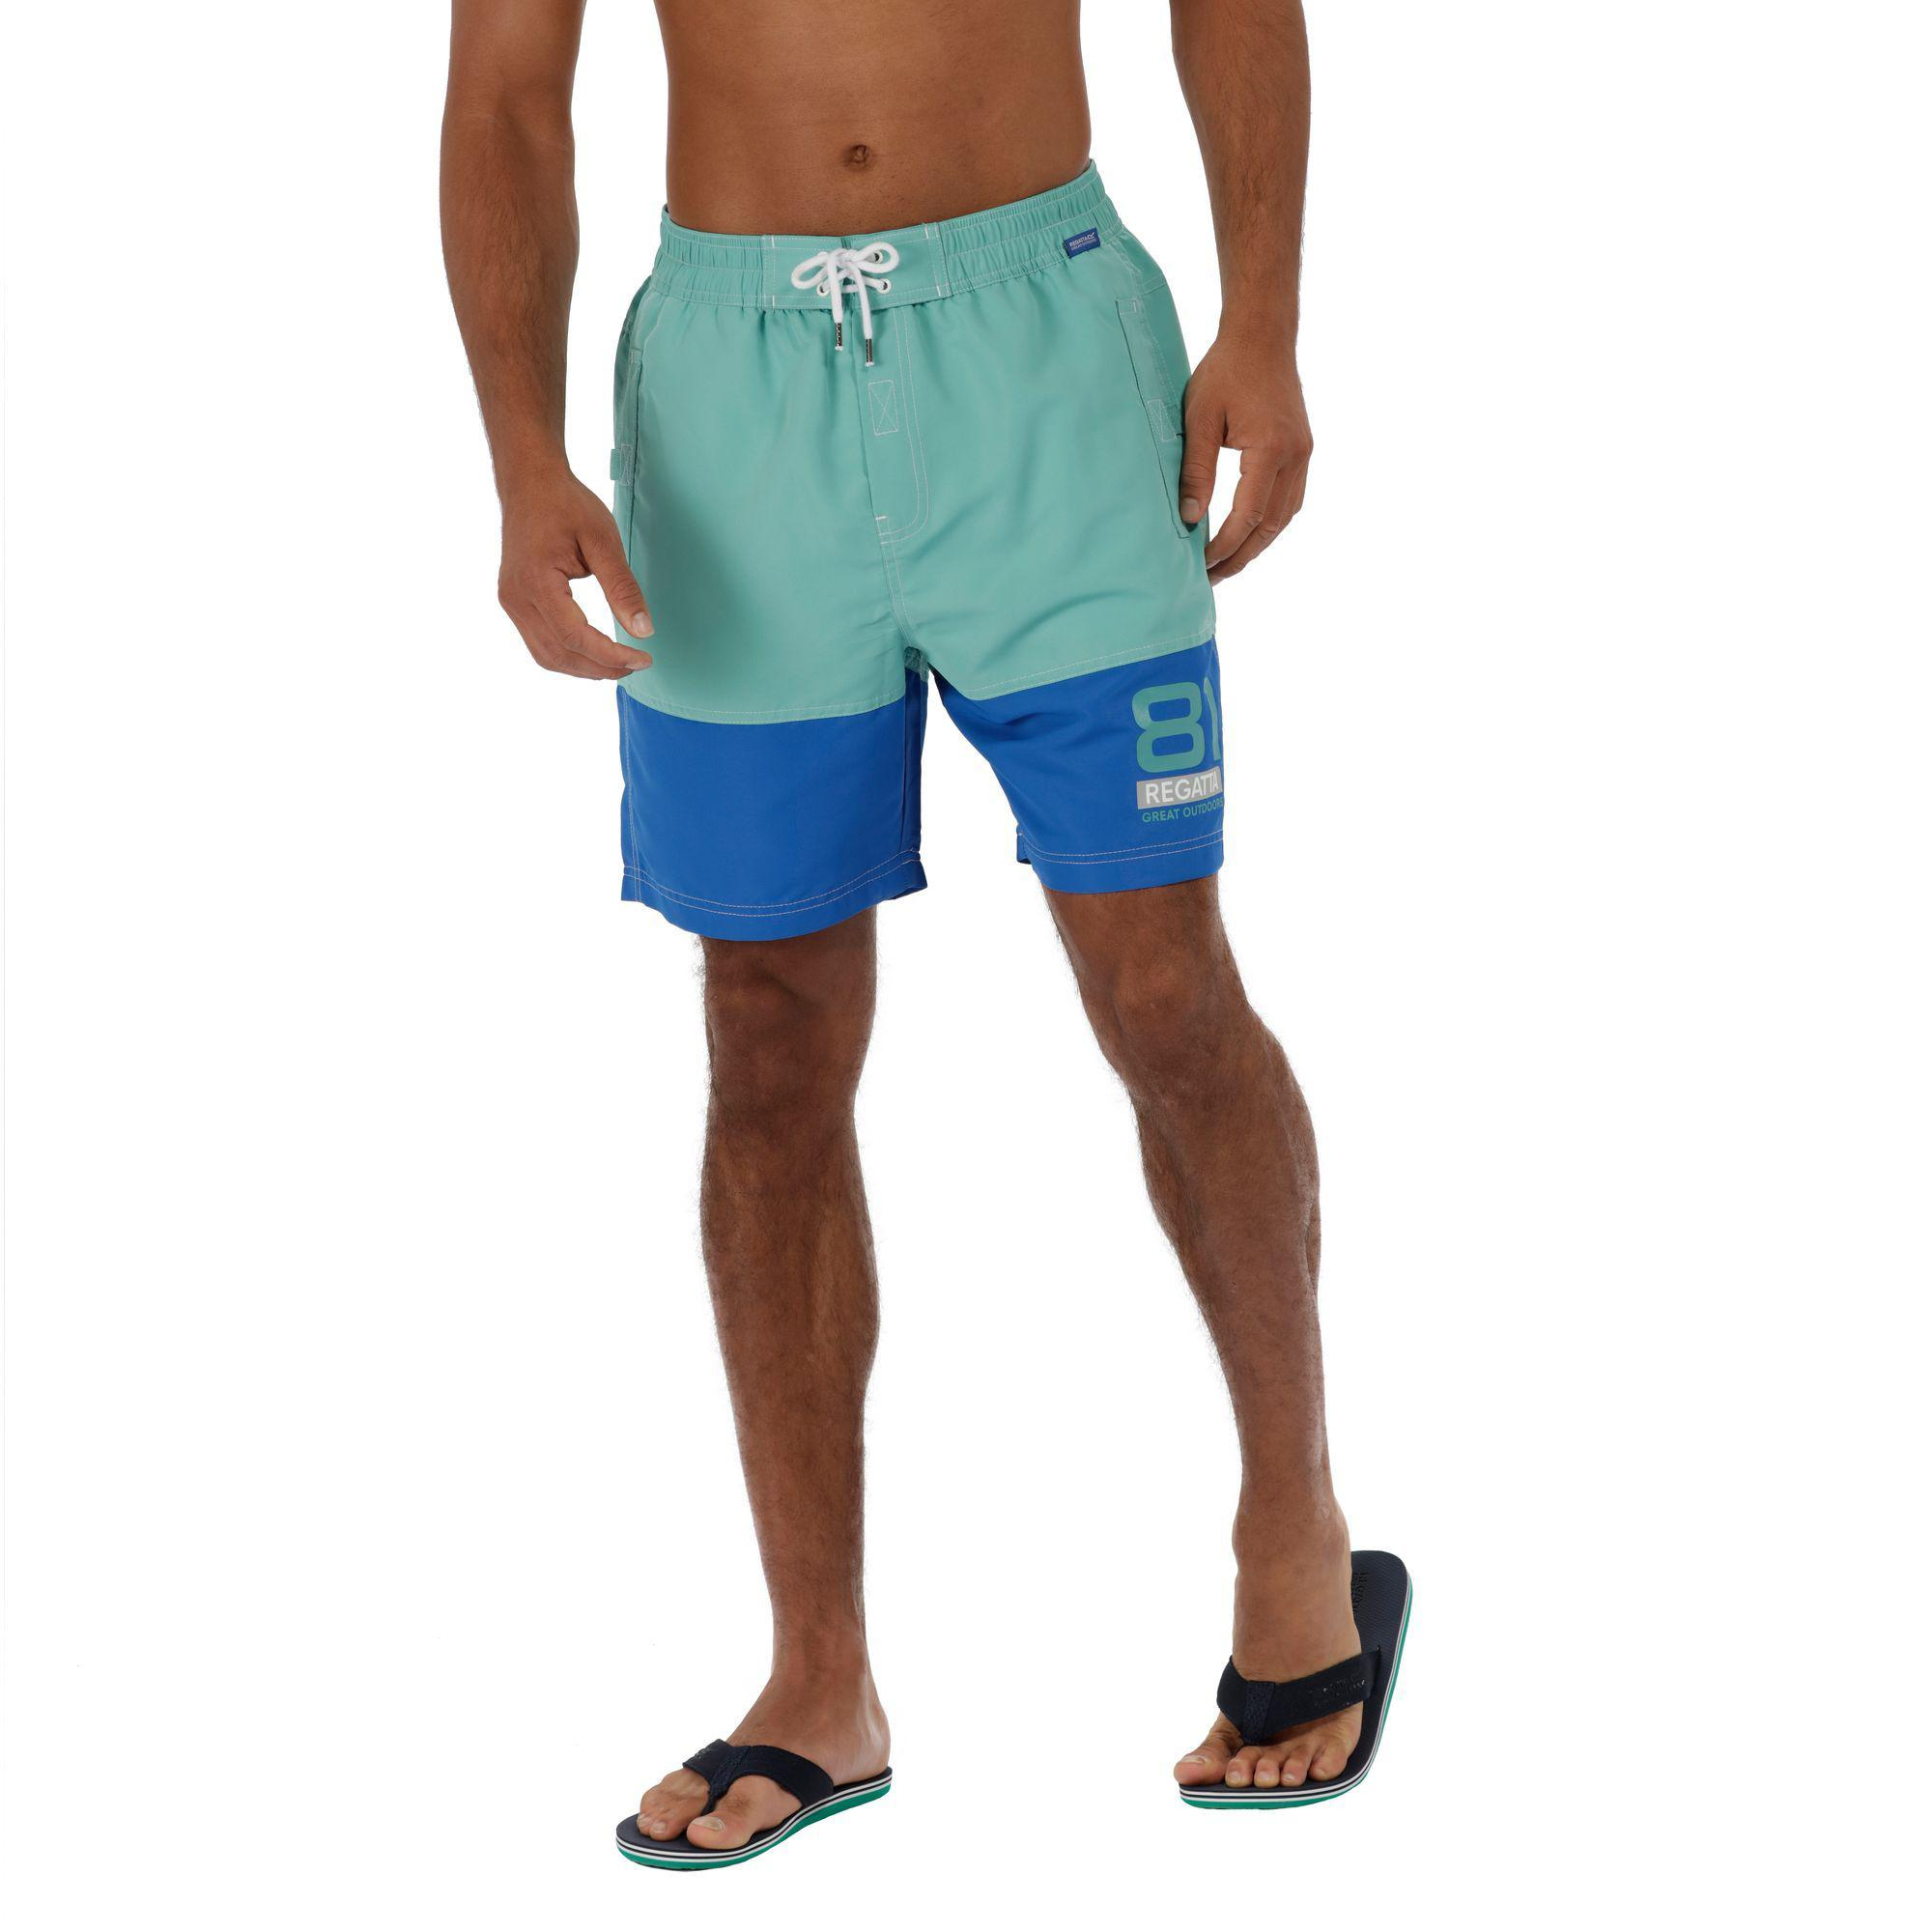 275b70b4fa Regatta Green 'brachtmar' Swim Shorts in Green for Men - Lyst